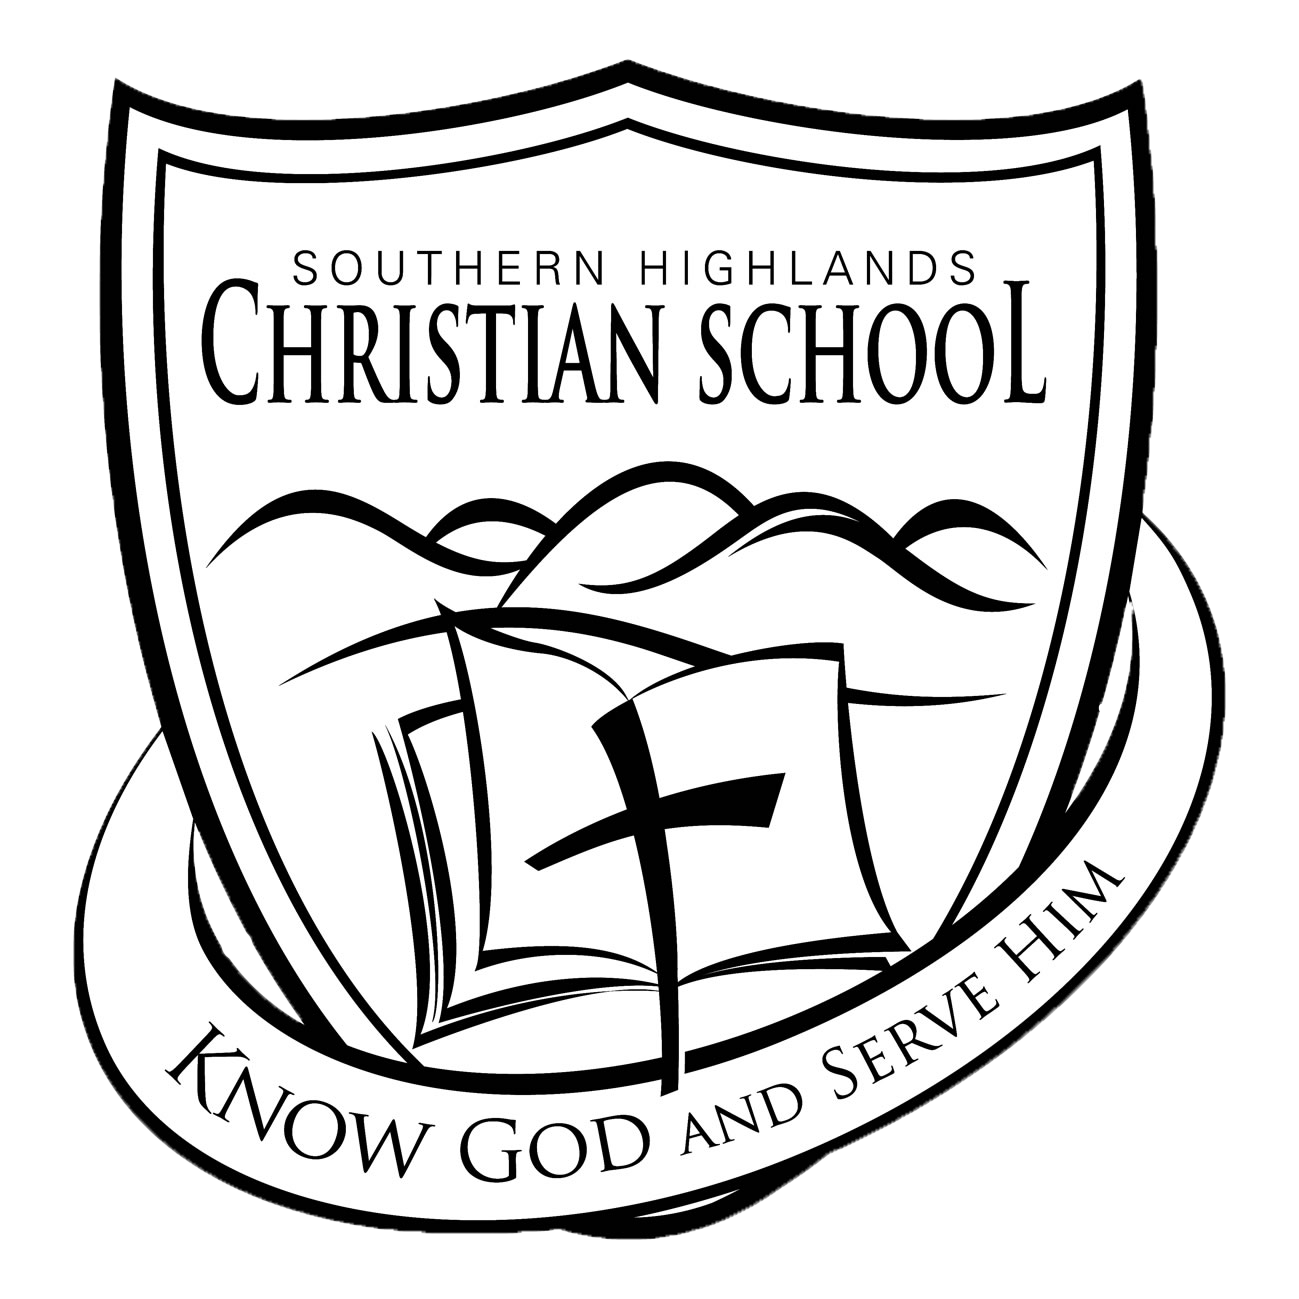 Christian school clipart jpg free library Southern Highlands Christian School | Know God And Serve Him jpg free library